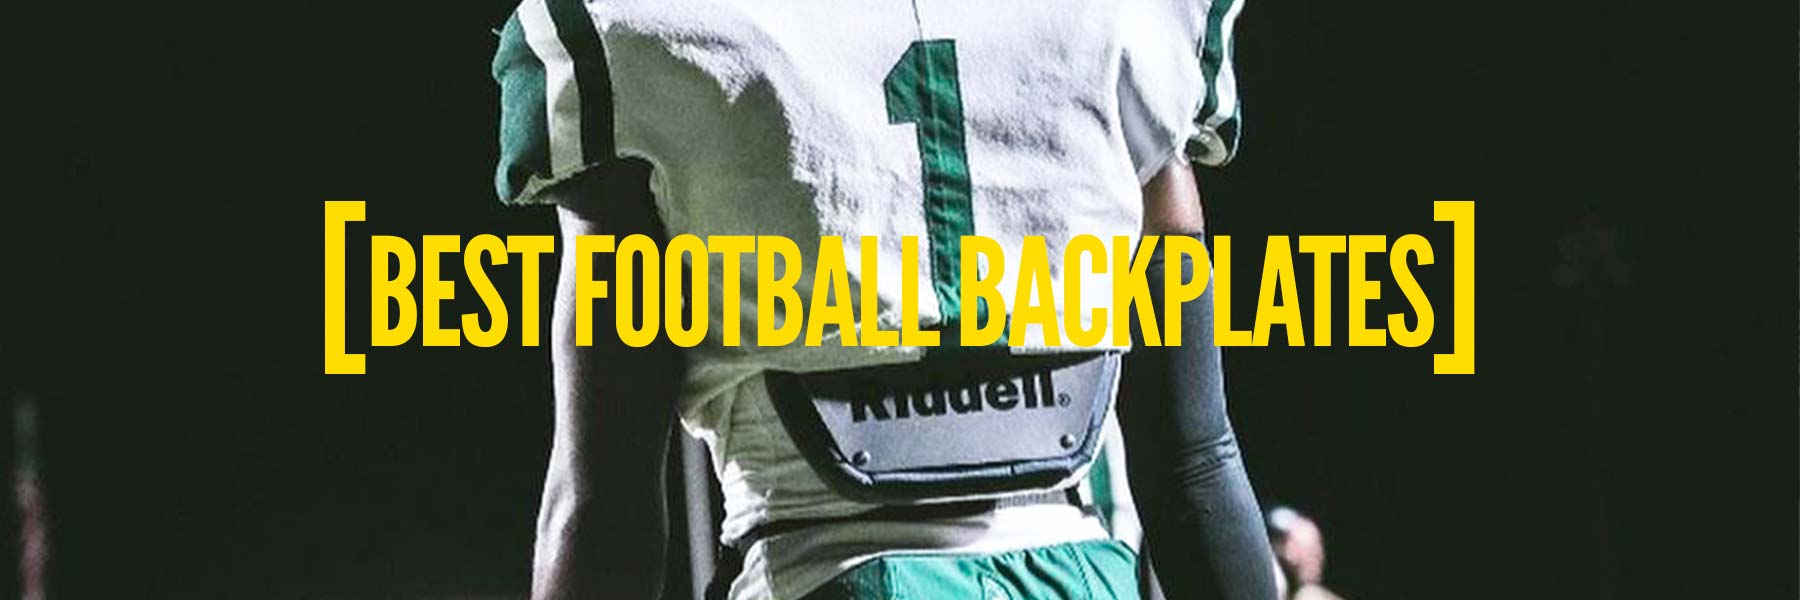 Best-Football-Backplates